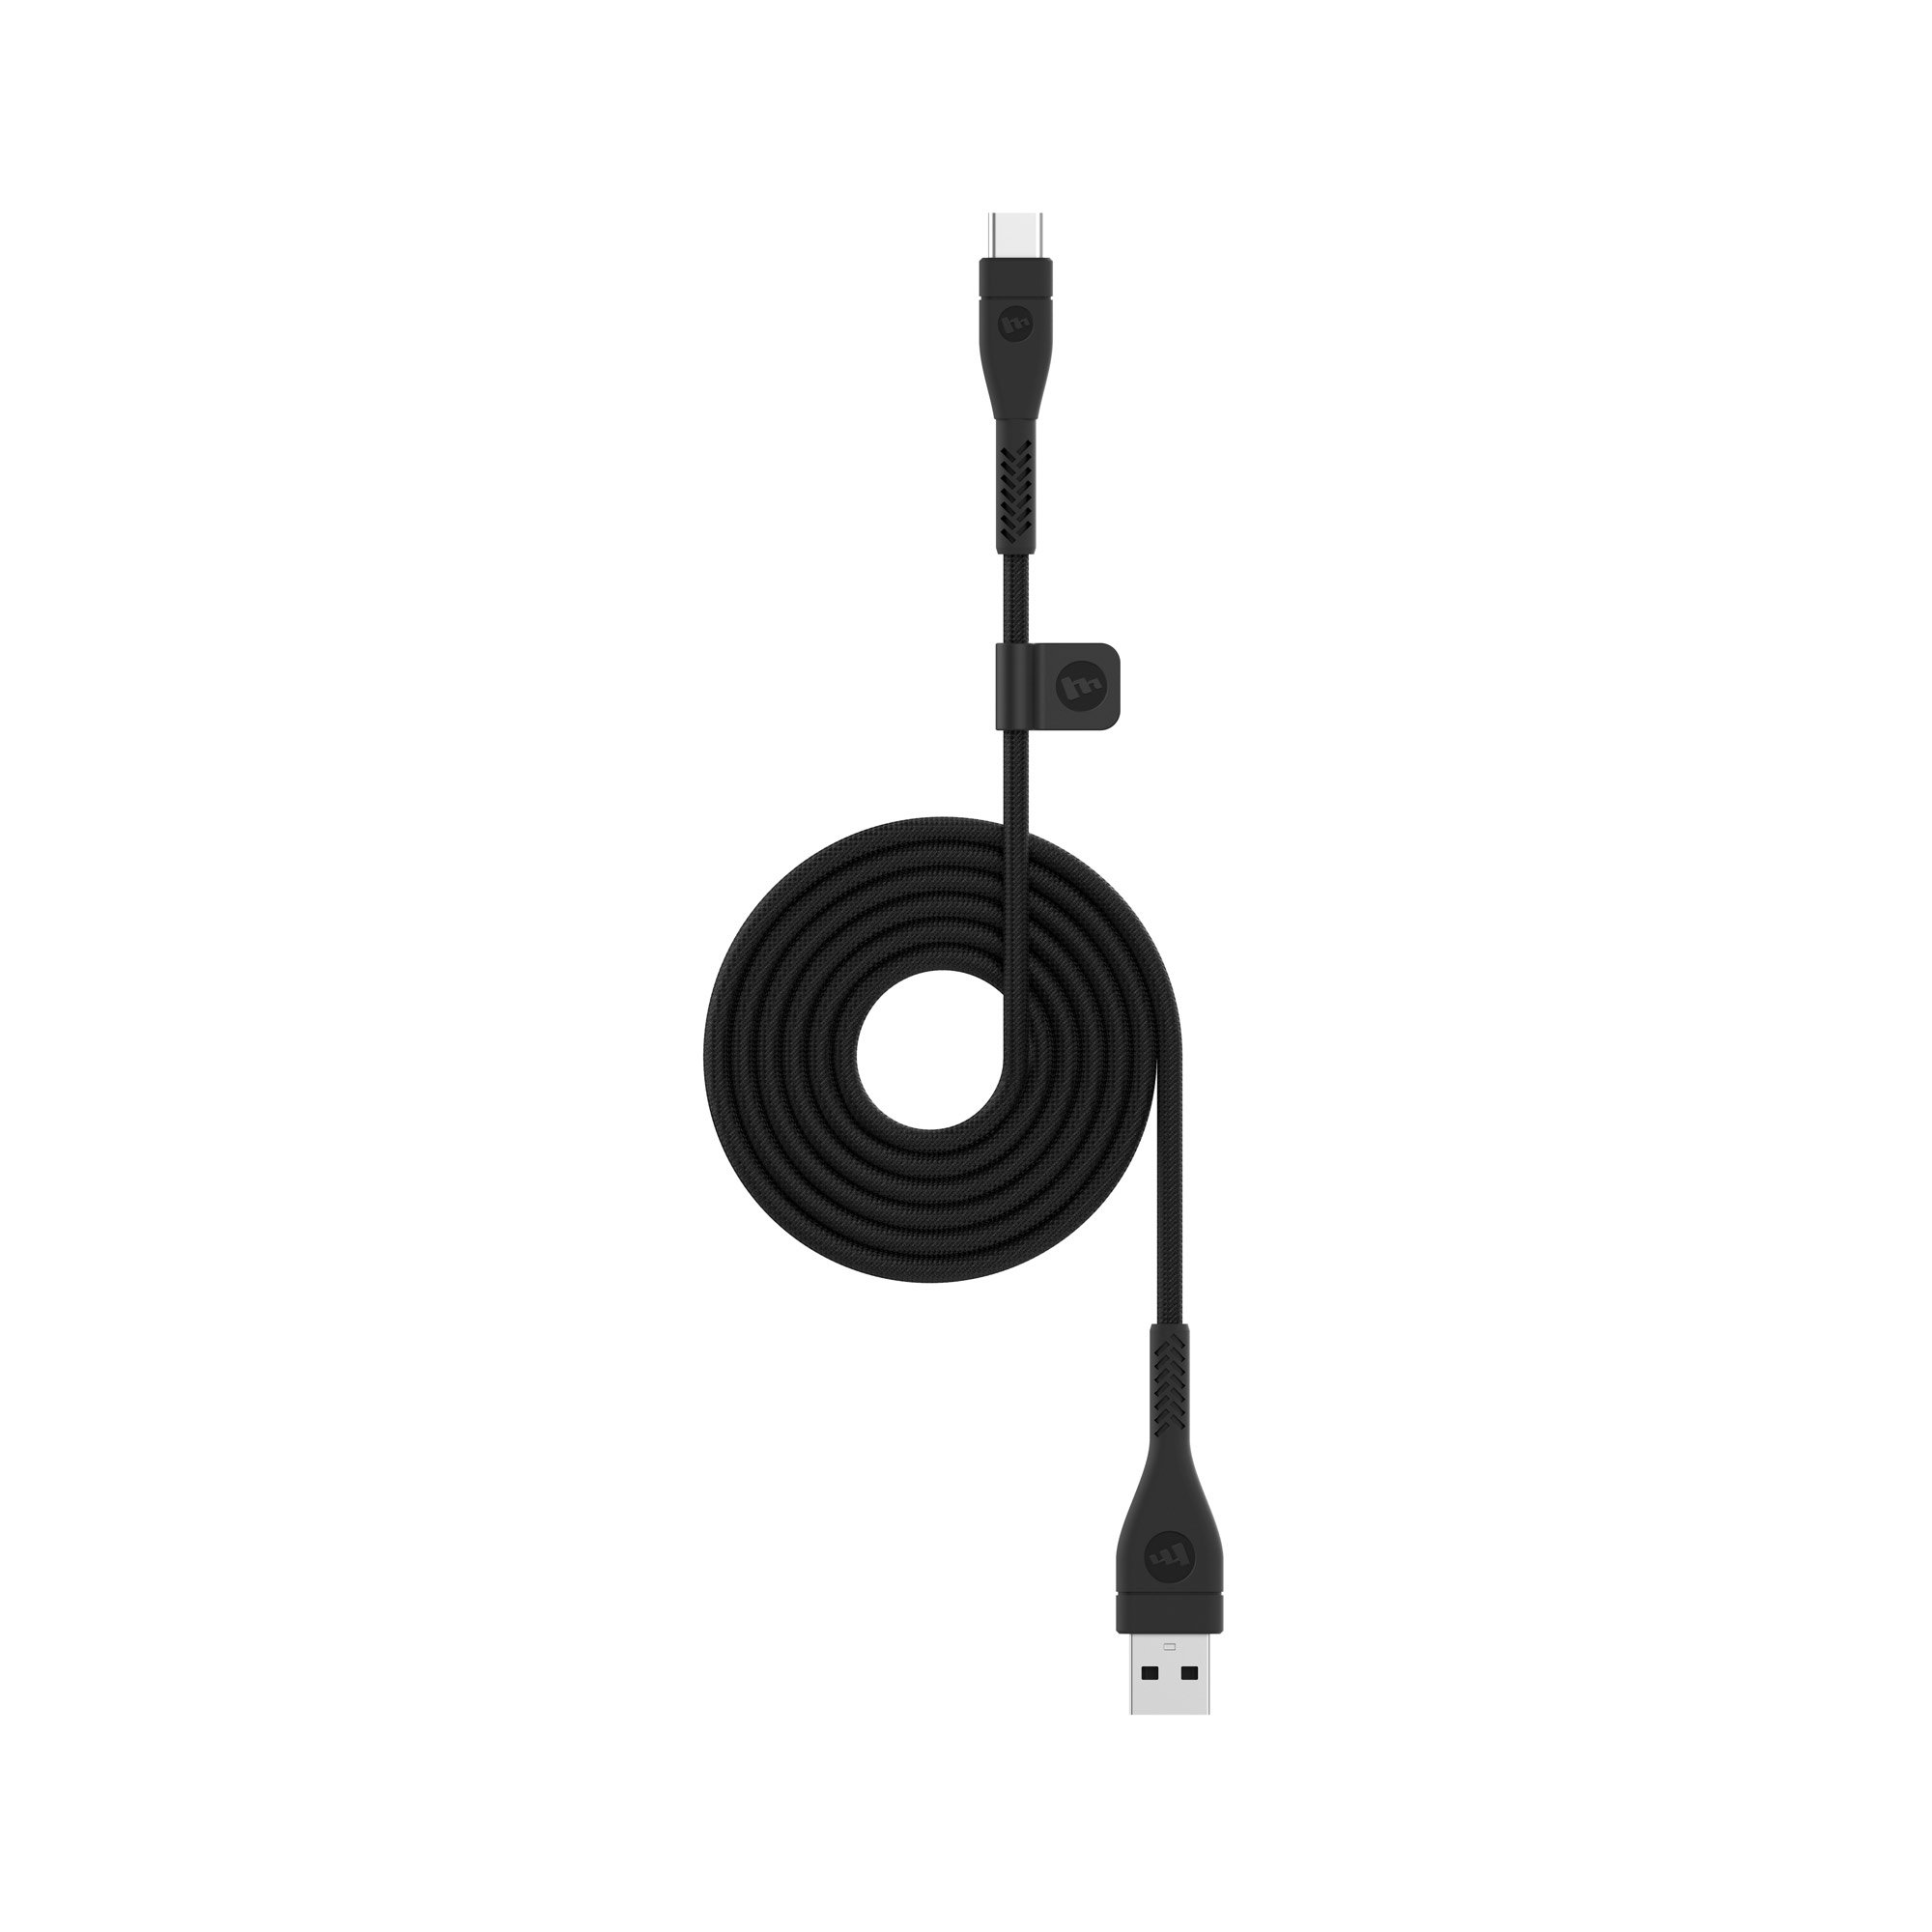 mophie 1 Meter PRO Cable - Micro USB 2.0 USB-A to USB-C Cable Made for Devices with a USB-a or USB-C connectors - Black